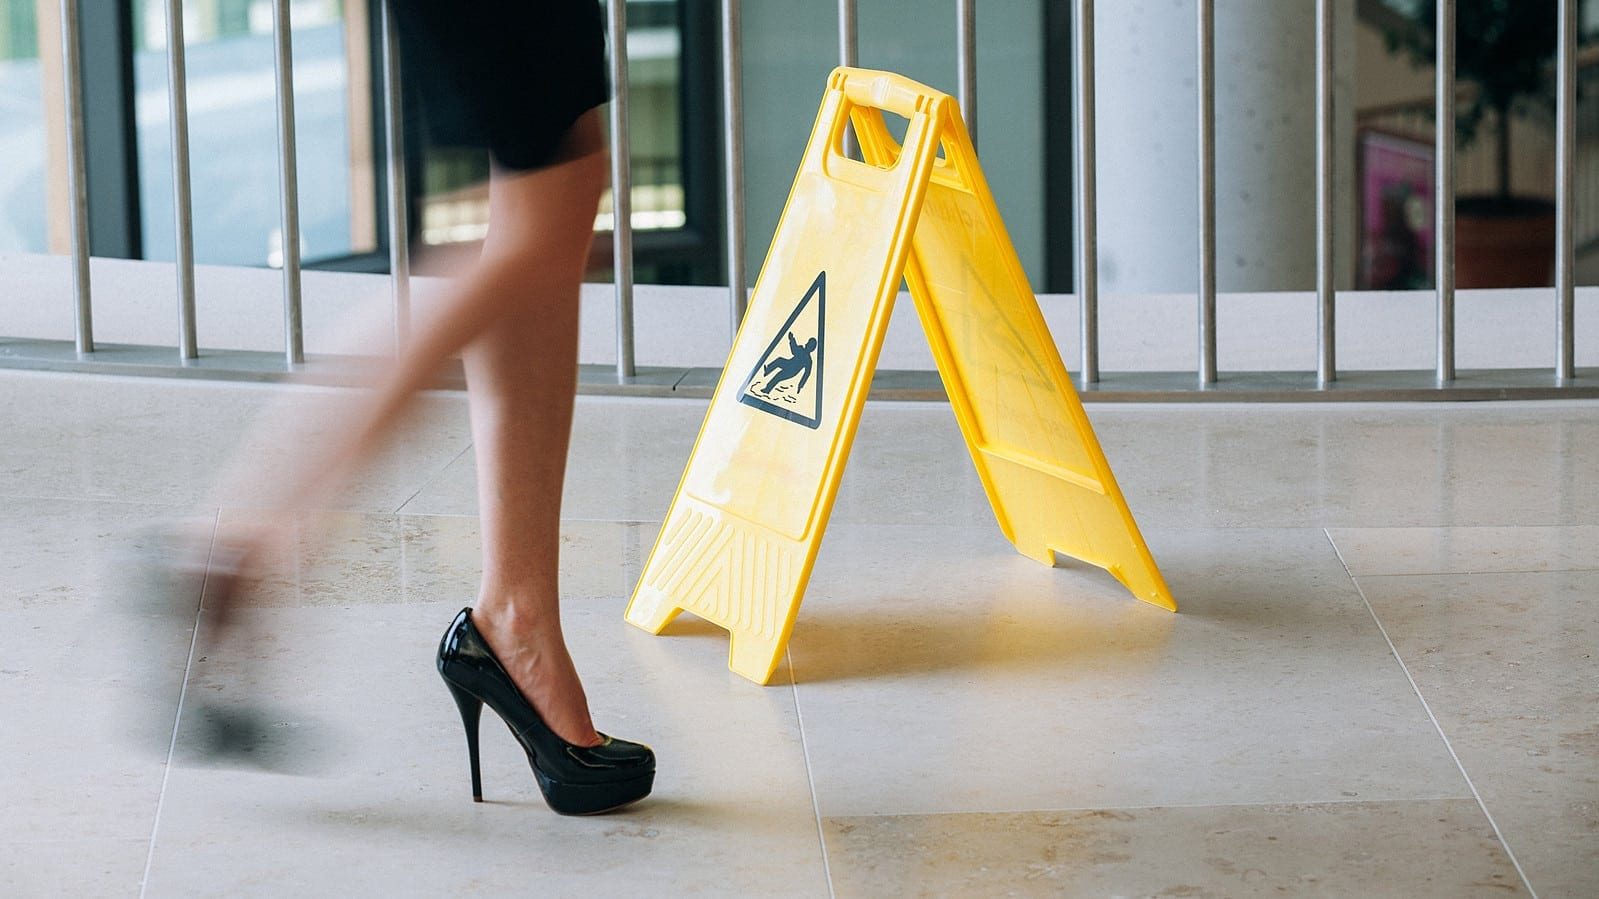 Woman In High Heels Walking Past Caution Slippery Sign